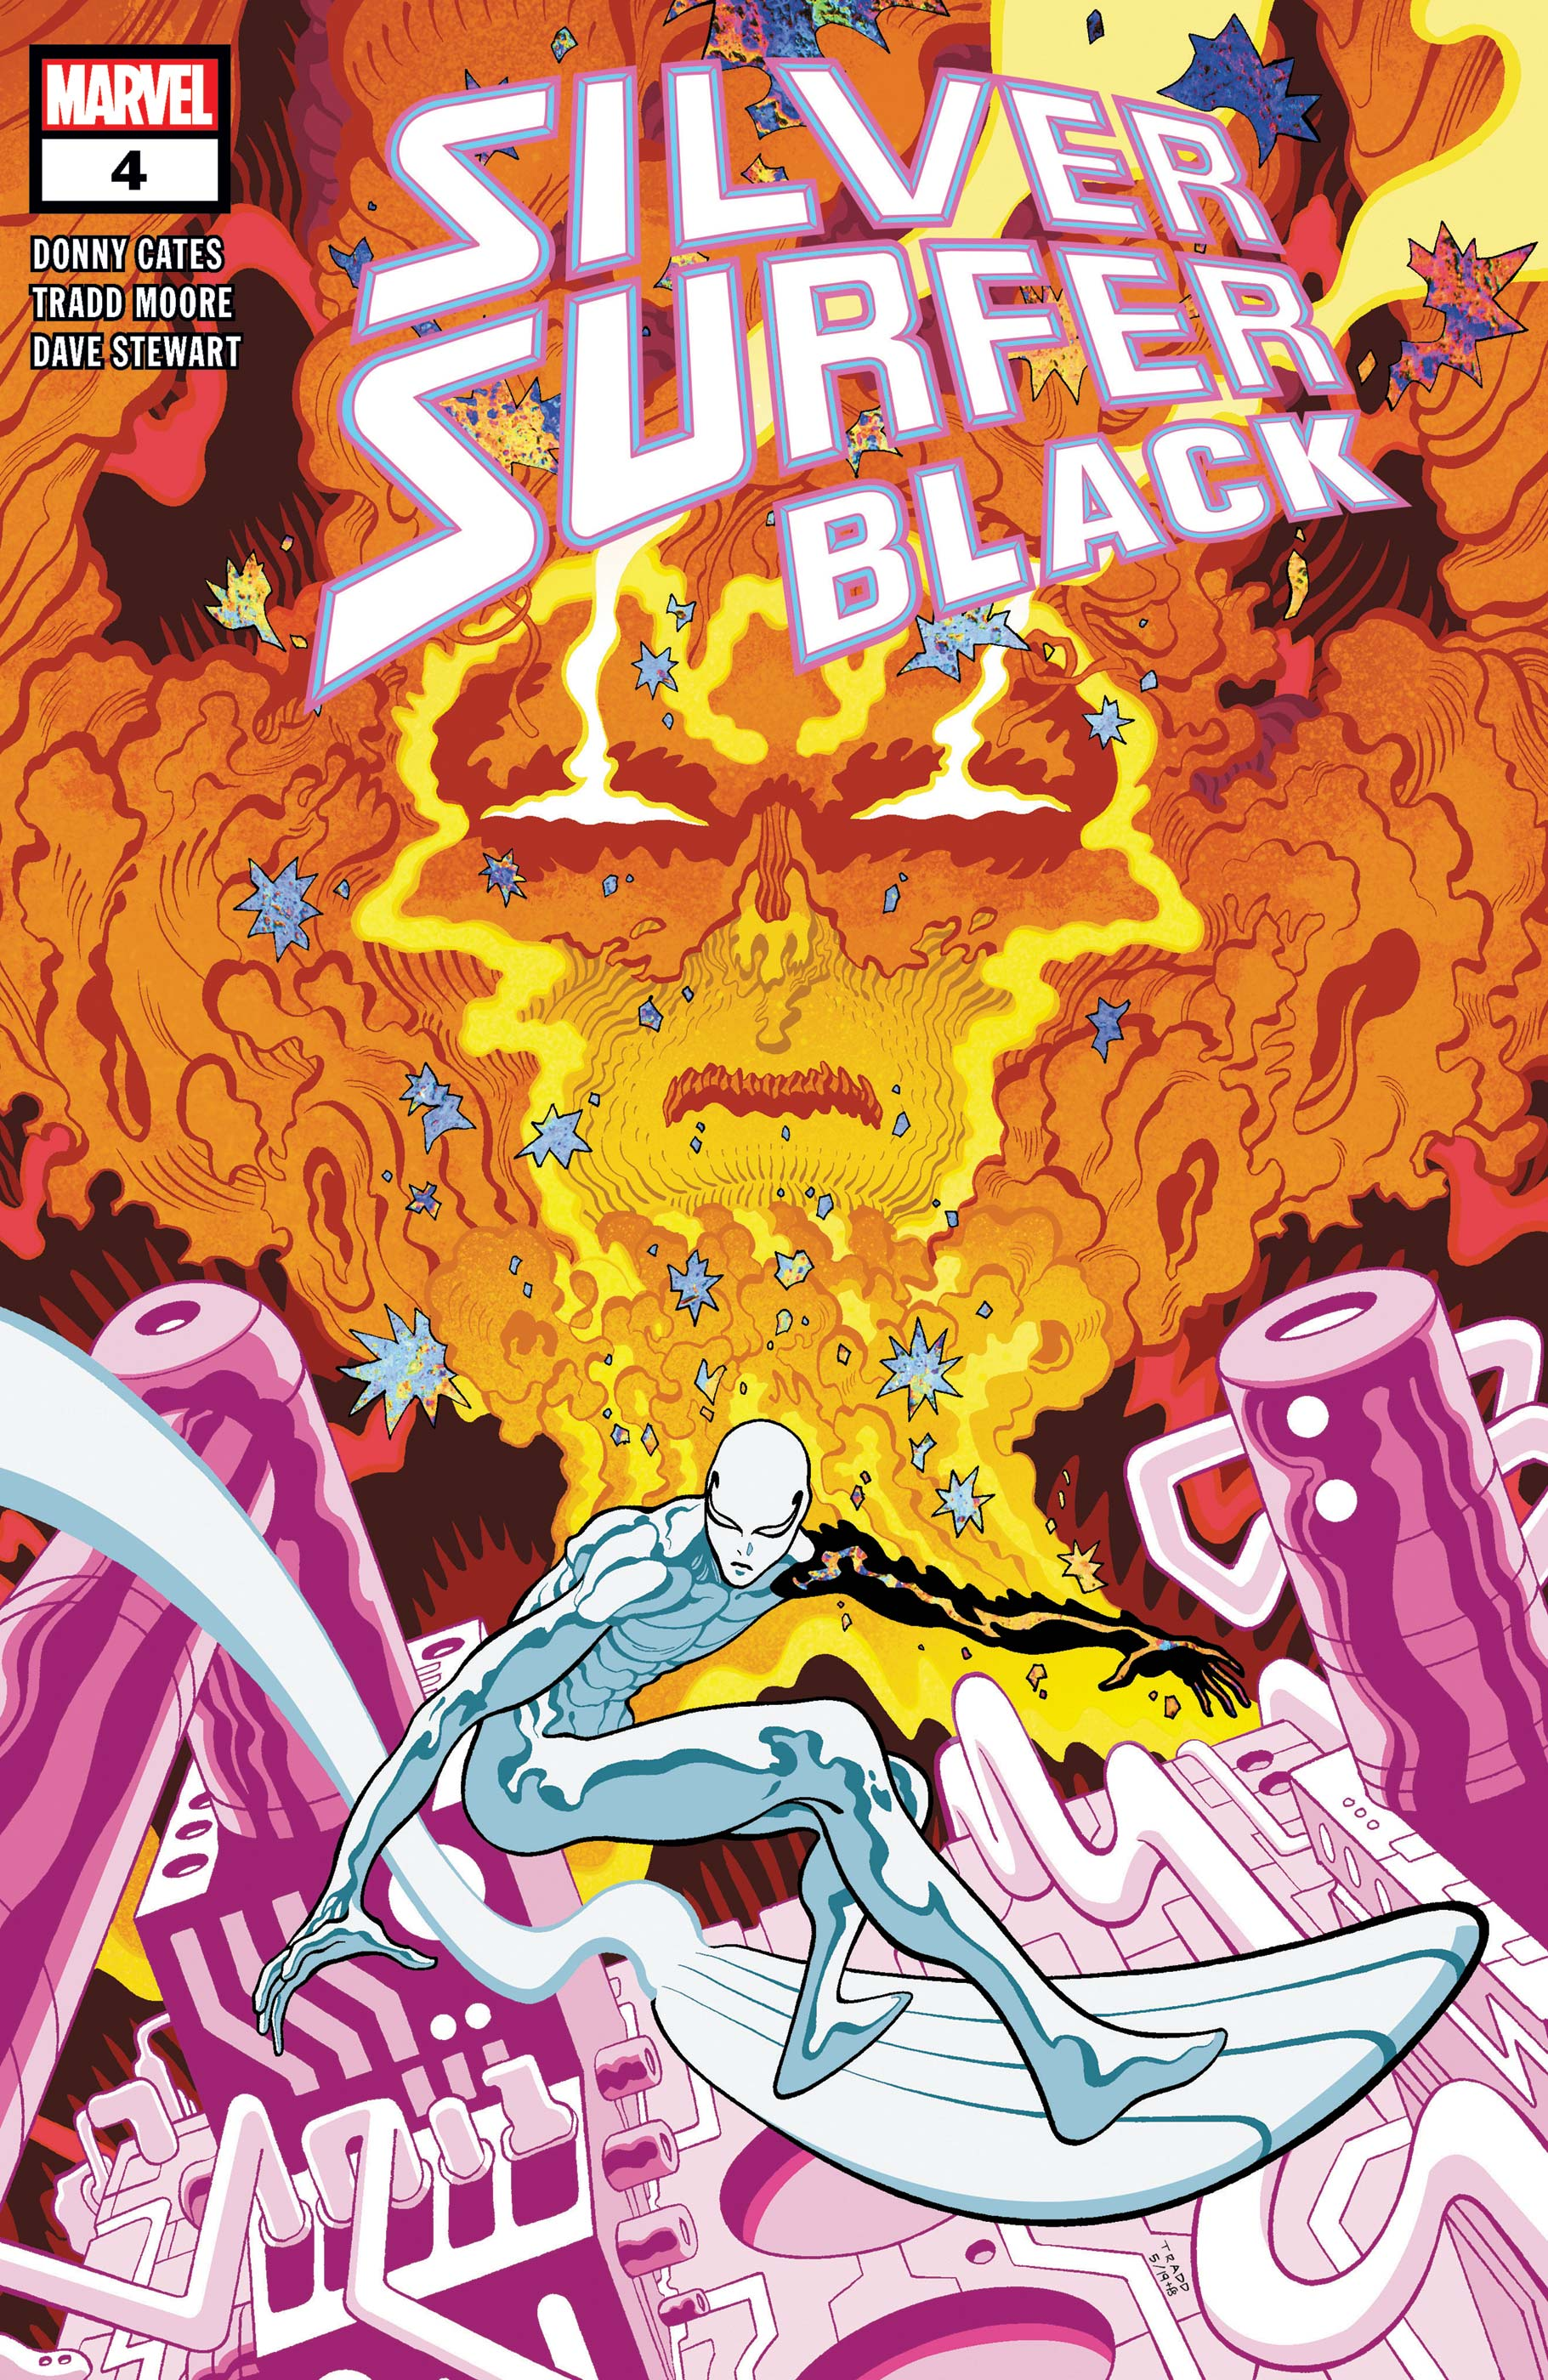 Silver Surfer: Black (2019) #4